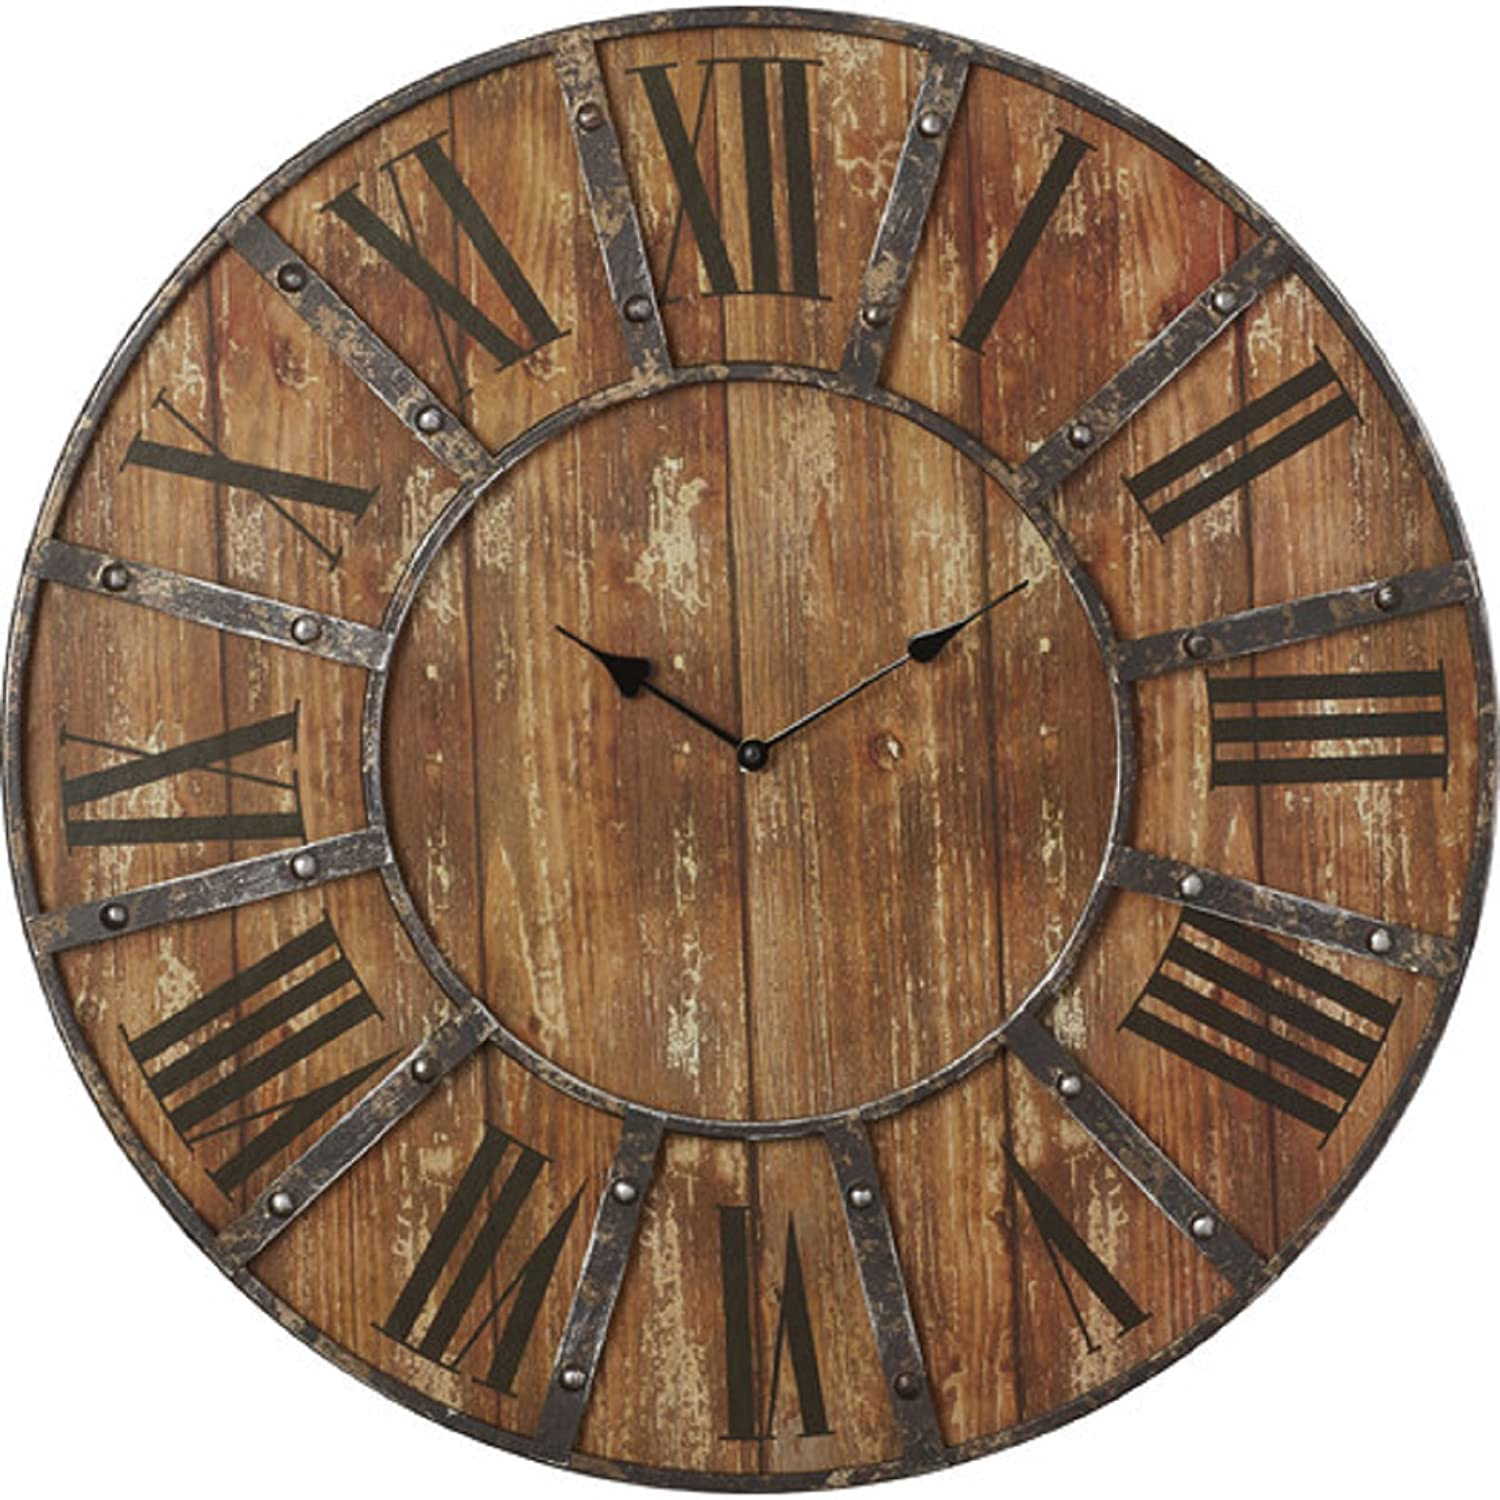 Amazon oversized 24 rustic metal wall clock roman numeral amazon oversized 24 rustic metal wall clock roman numeral numbering home kitchen amipublicfo Image collections